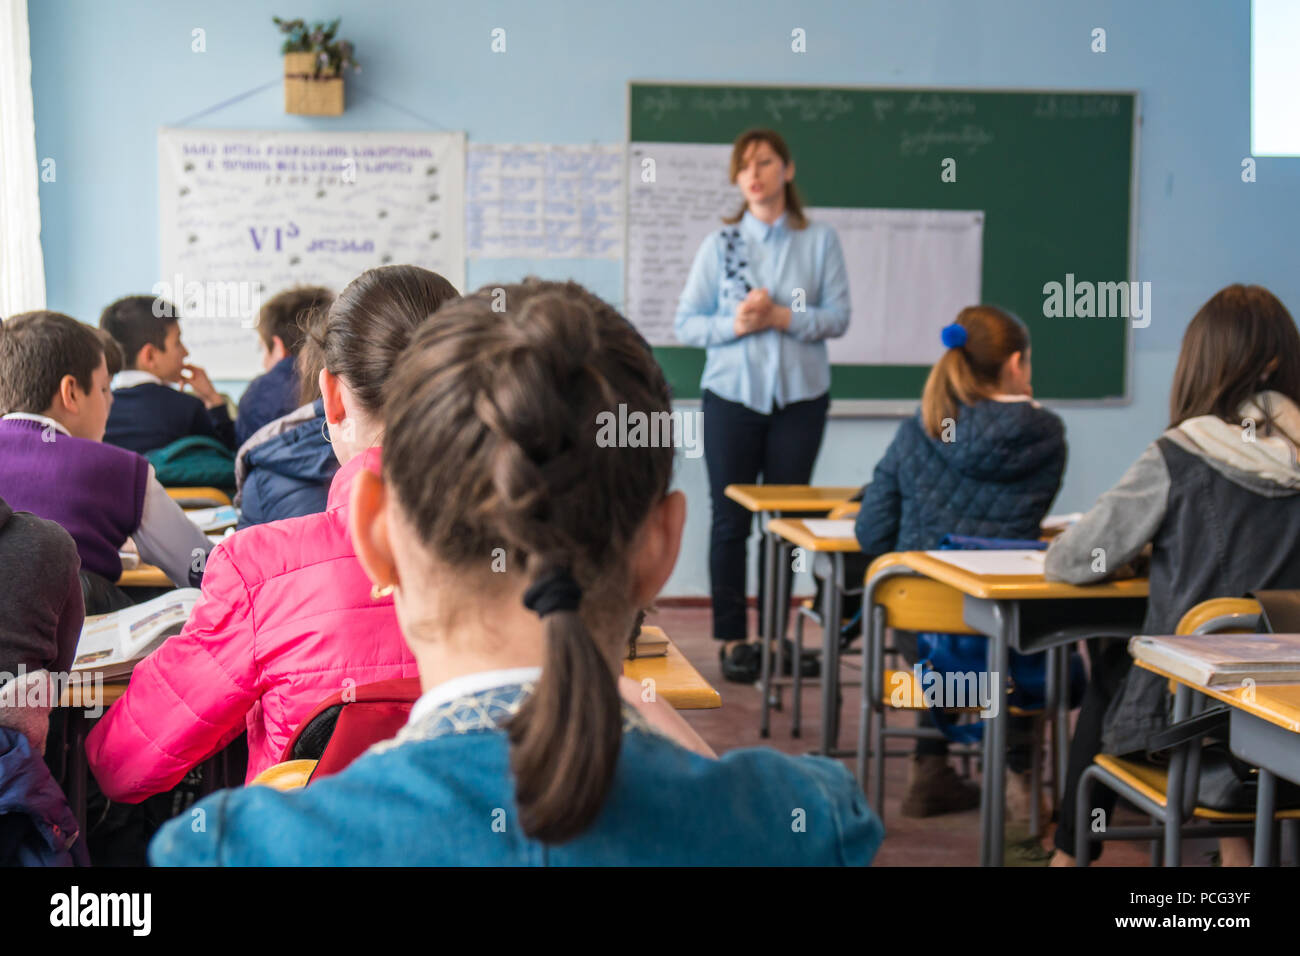 school children are participating actively in class. Education. - Stock Image